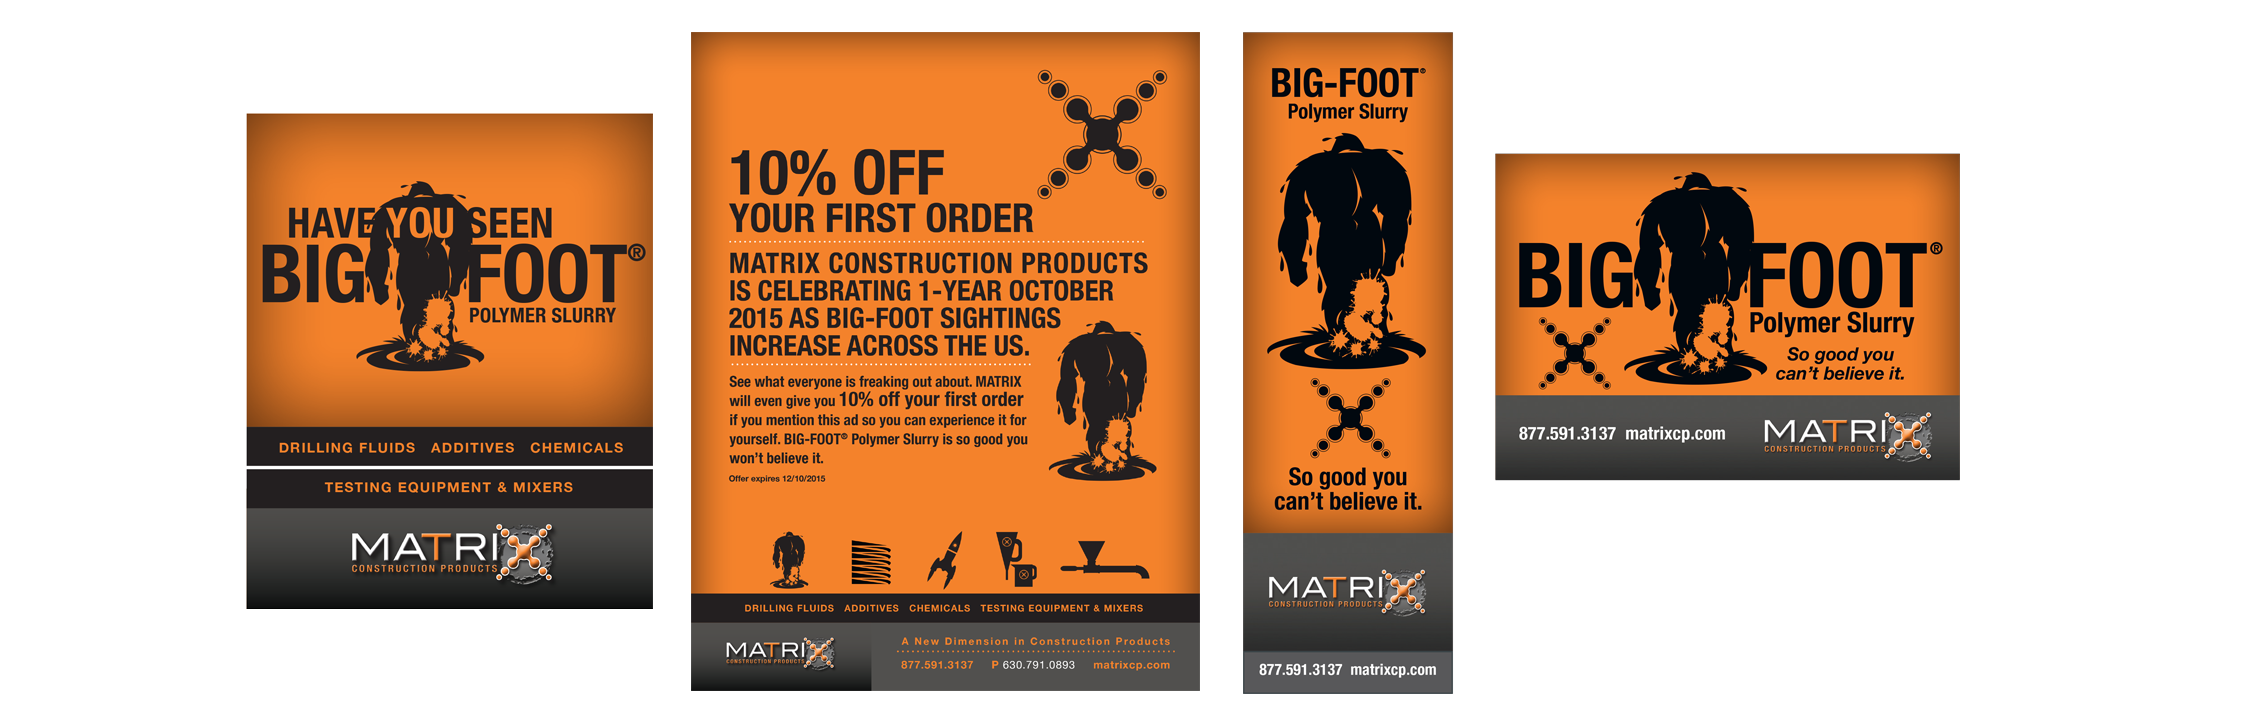 """Advertising   """"Seen Big-Foot?"""" was used to introduce MATRIX to the construction industry. The flood coats of bright orange were used to make the ad pop out from the other advertisers in the publications. The message is intended to arouse curiosity and drive audience to the website."""